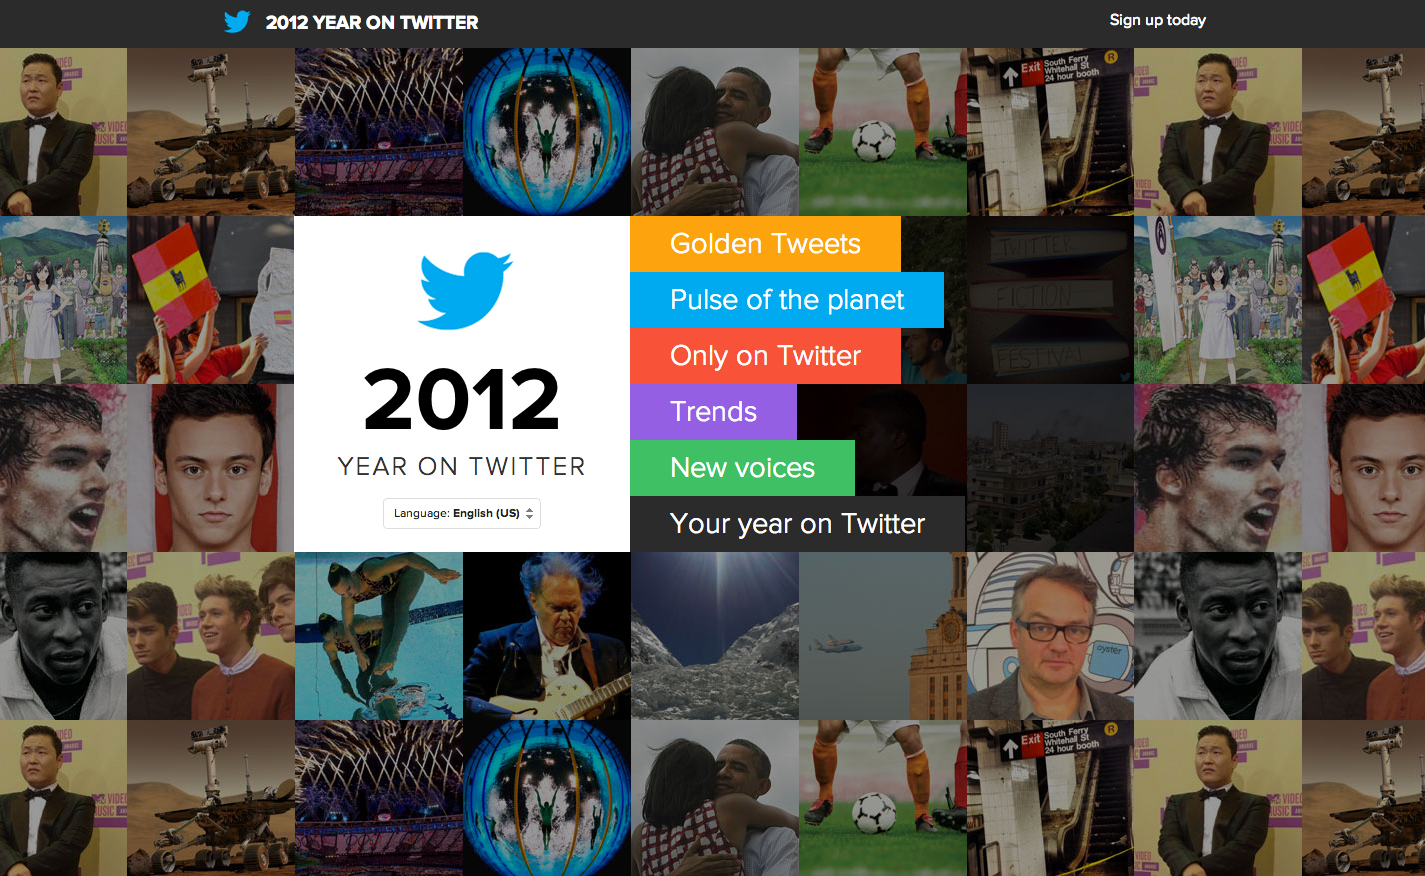 2012 Year on Twitter